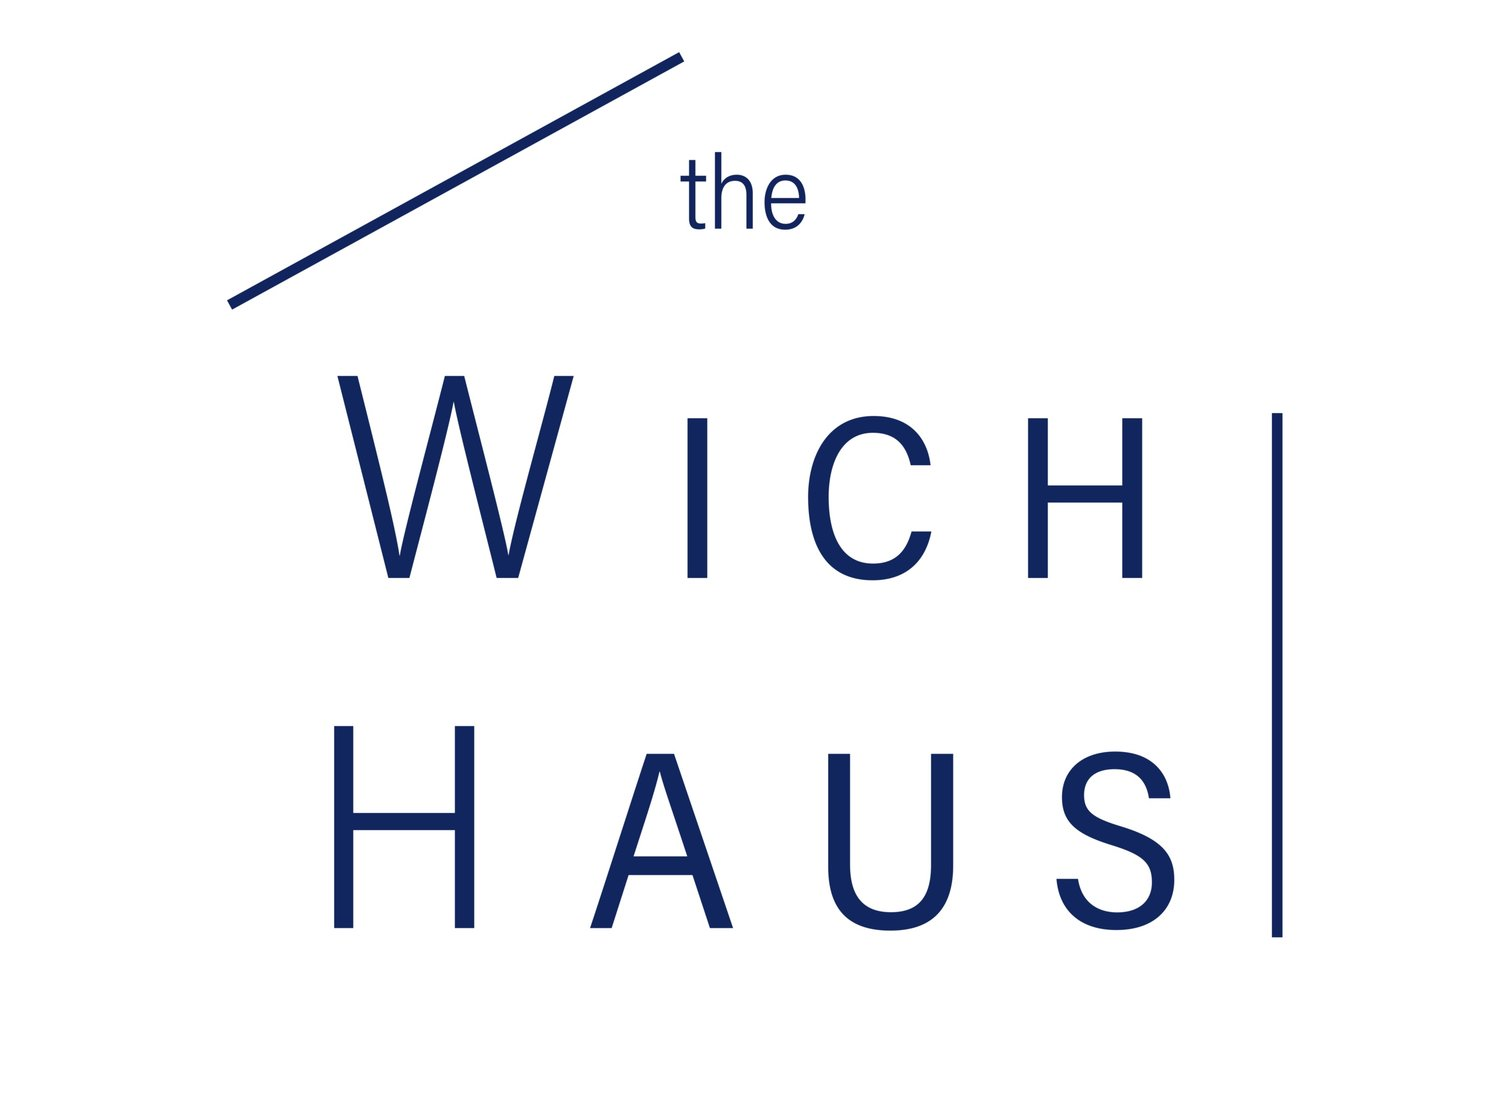 the Wich haus